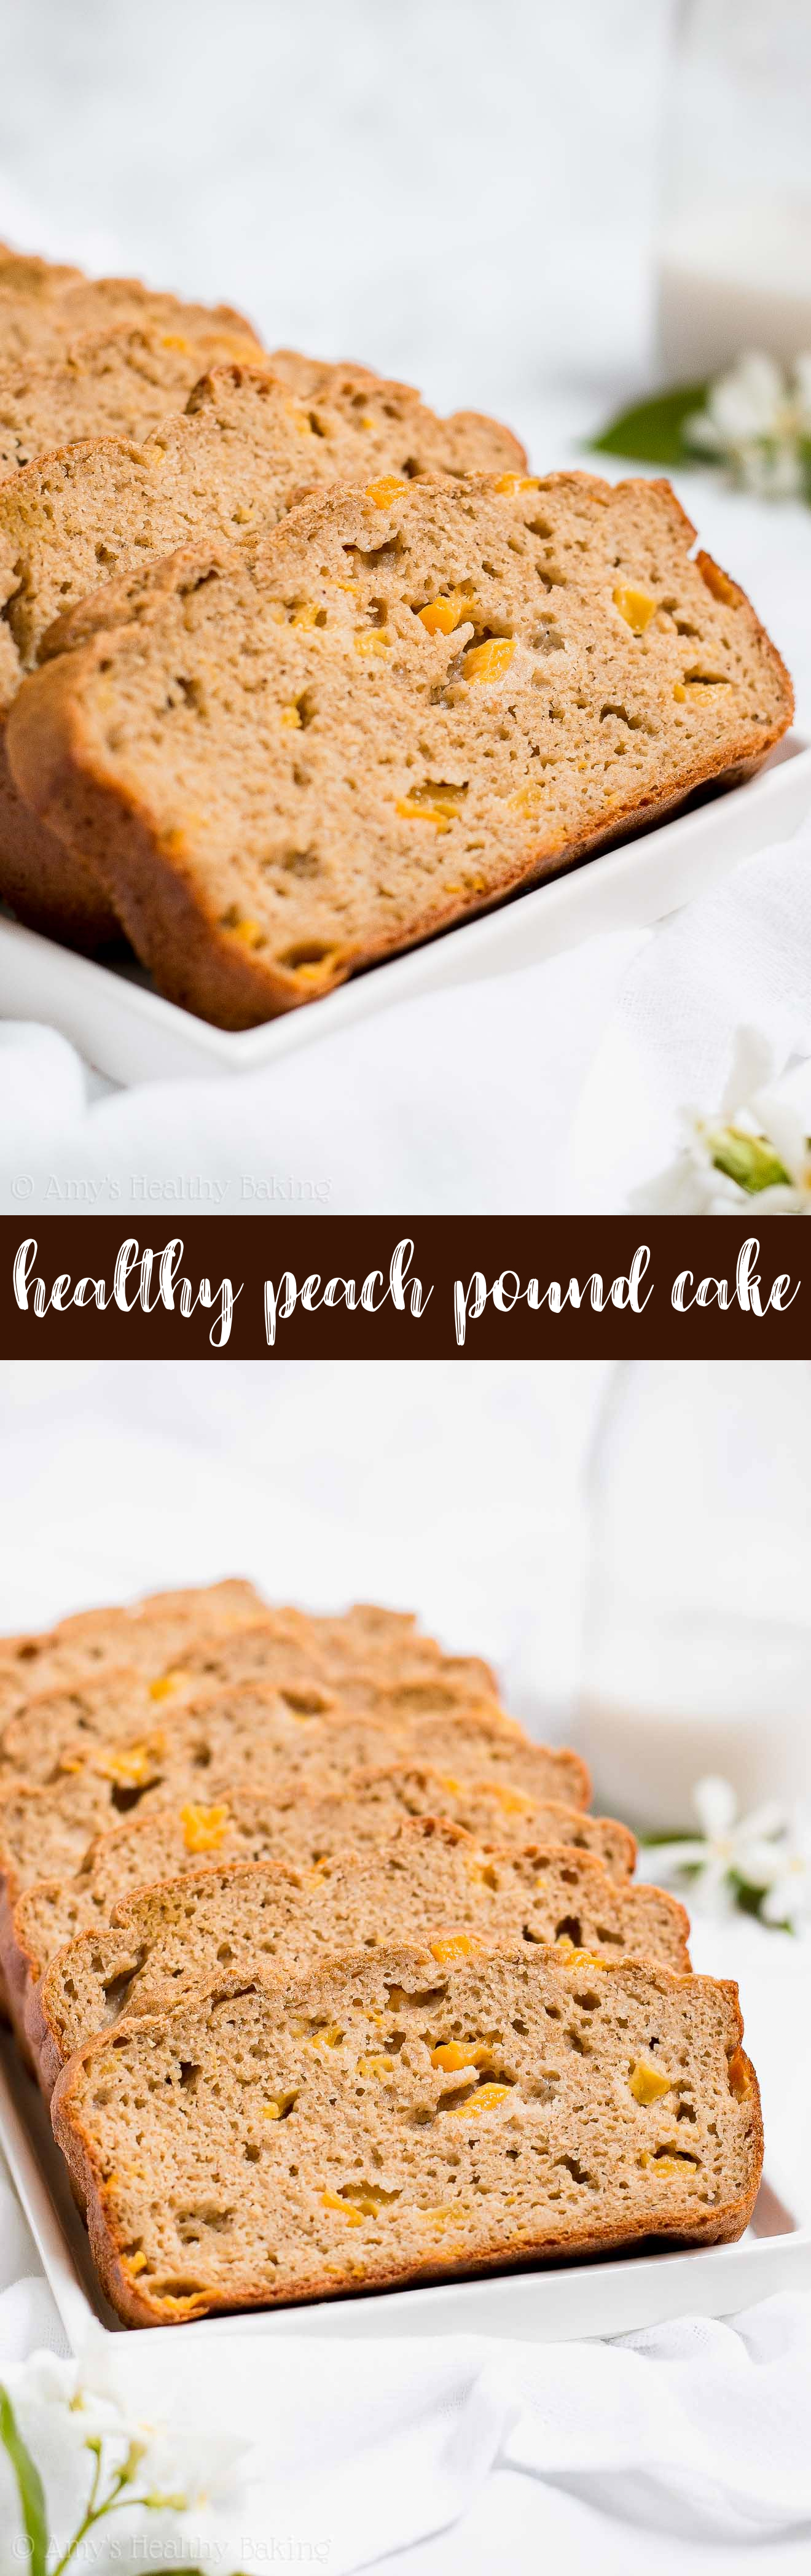 Best Ever Healthy Peach Pound Cake from scratch